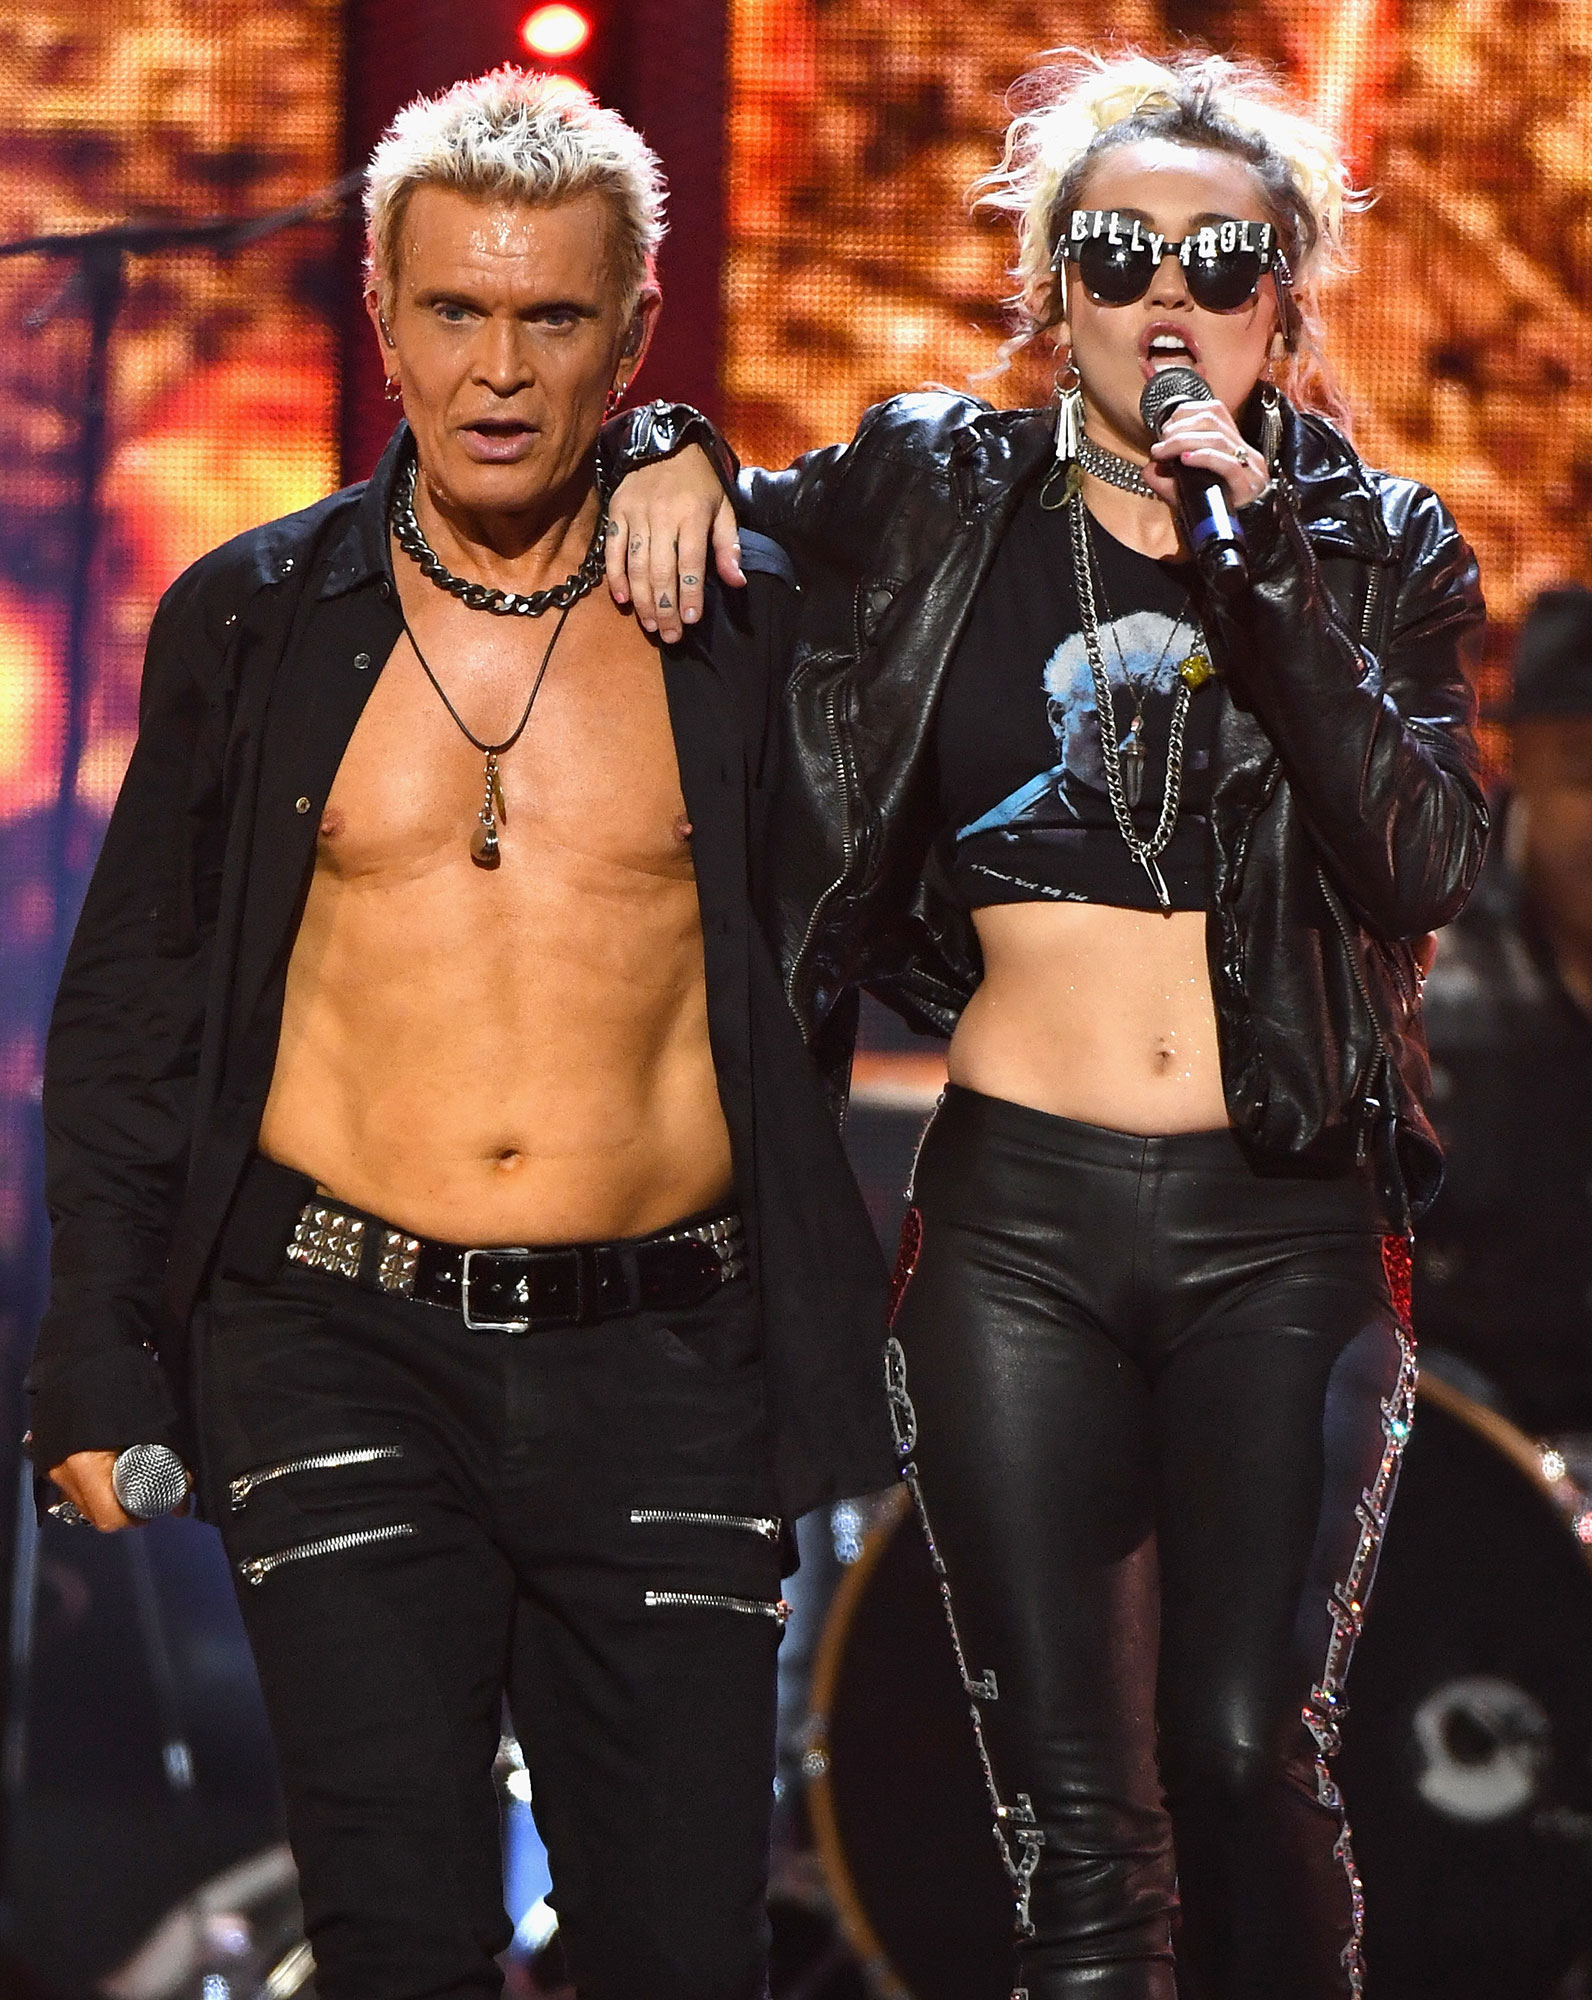 Miley Cyrus  Billy Idol Sing  Rebel Yell  at iHeartRadio Festival Billy Idol  Miley Cyrus